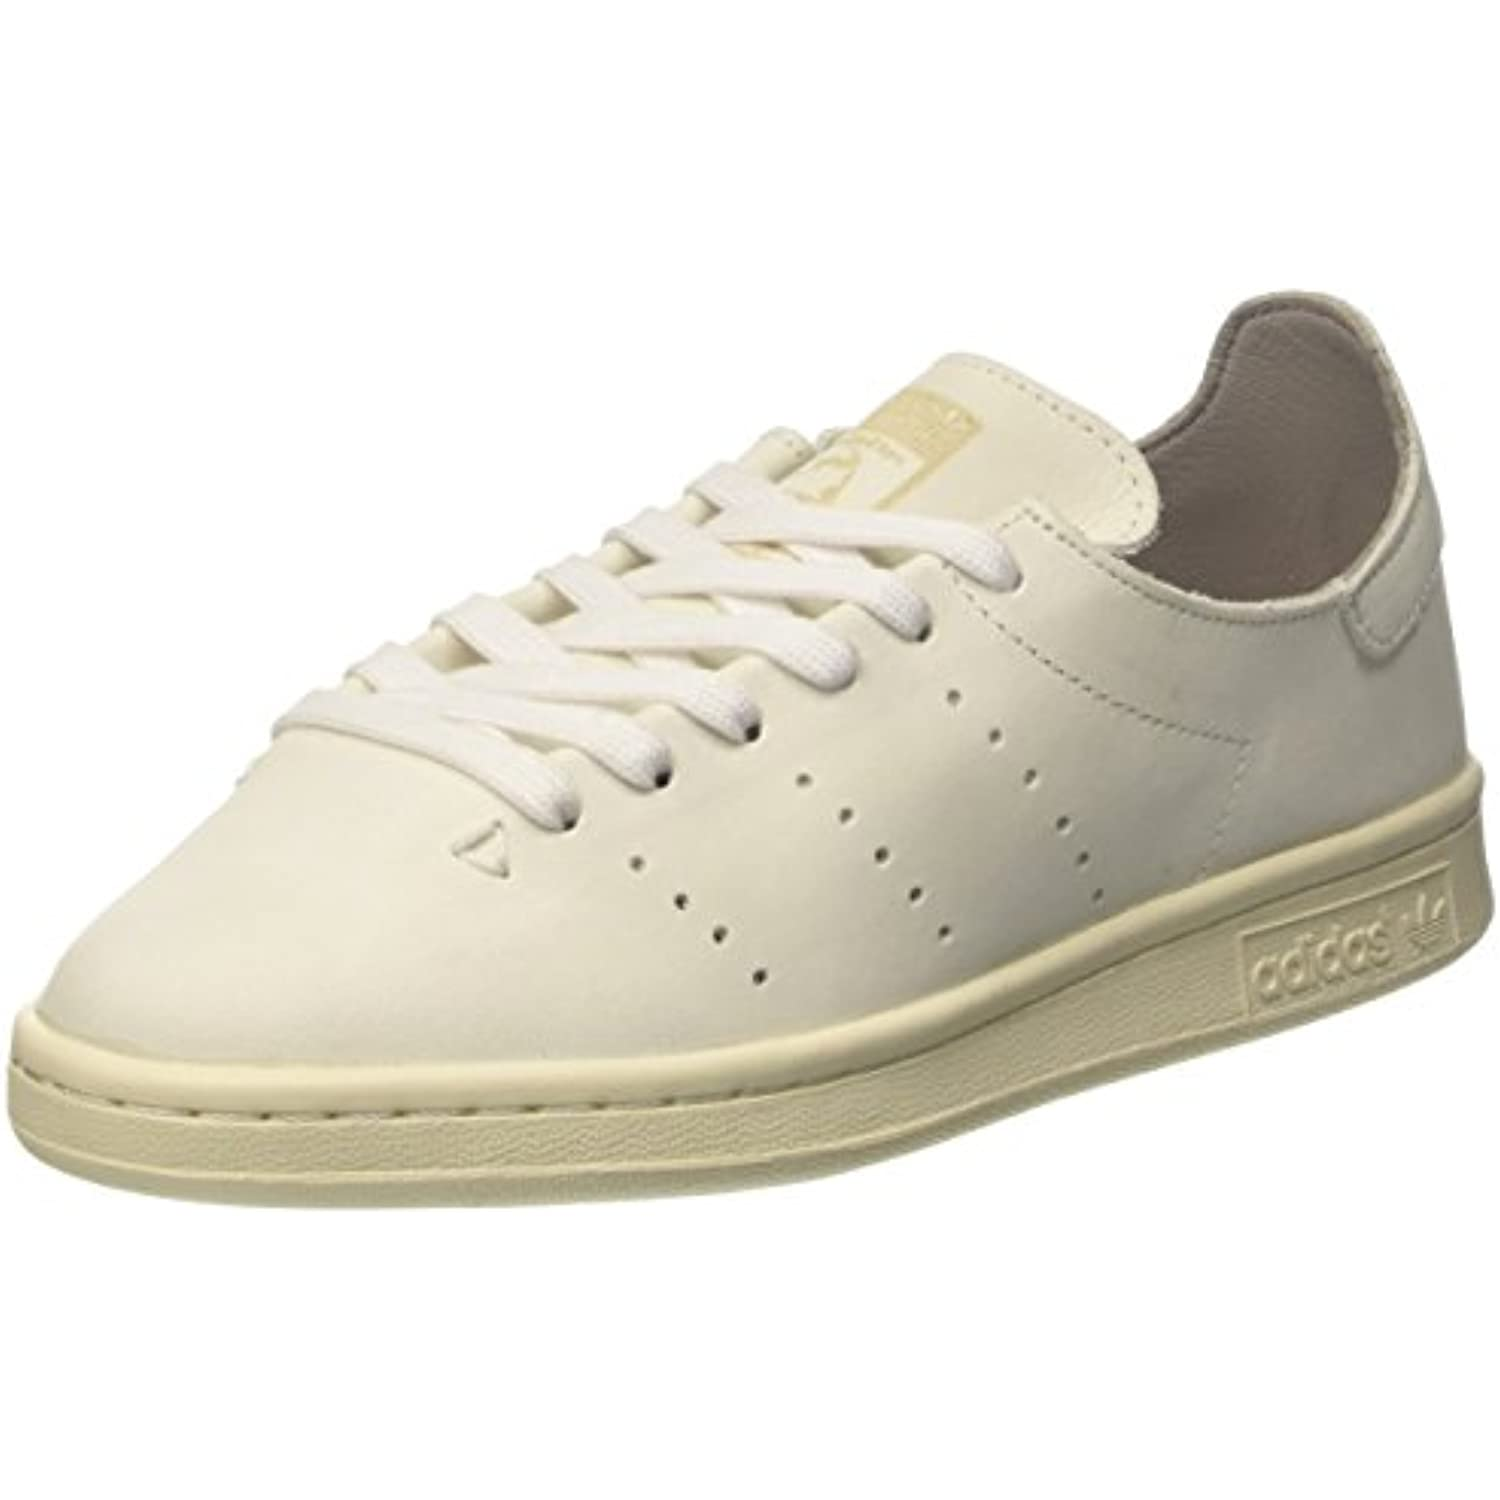 adidas Stan Smith Lea Sock, Basket Basses Mixte Adulte Adulte Adulte - B06WVD5BW2 - f7a44f